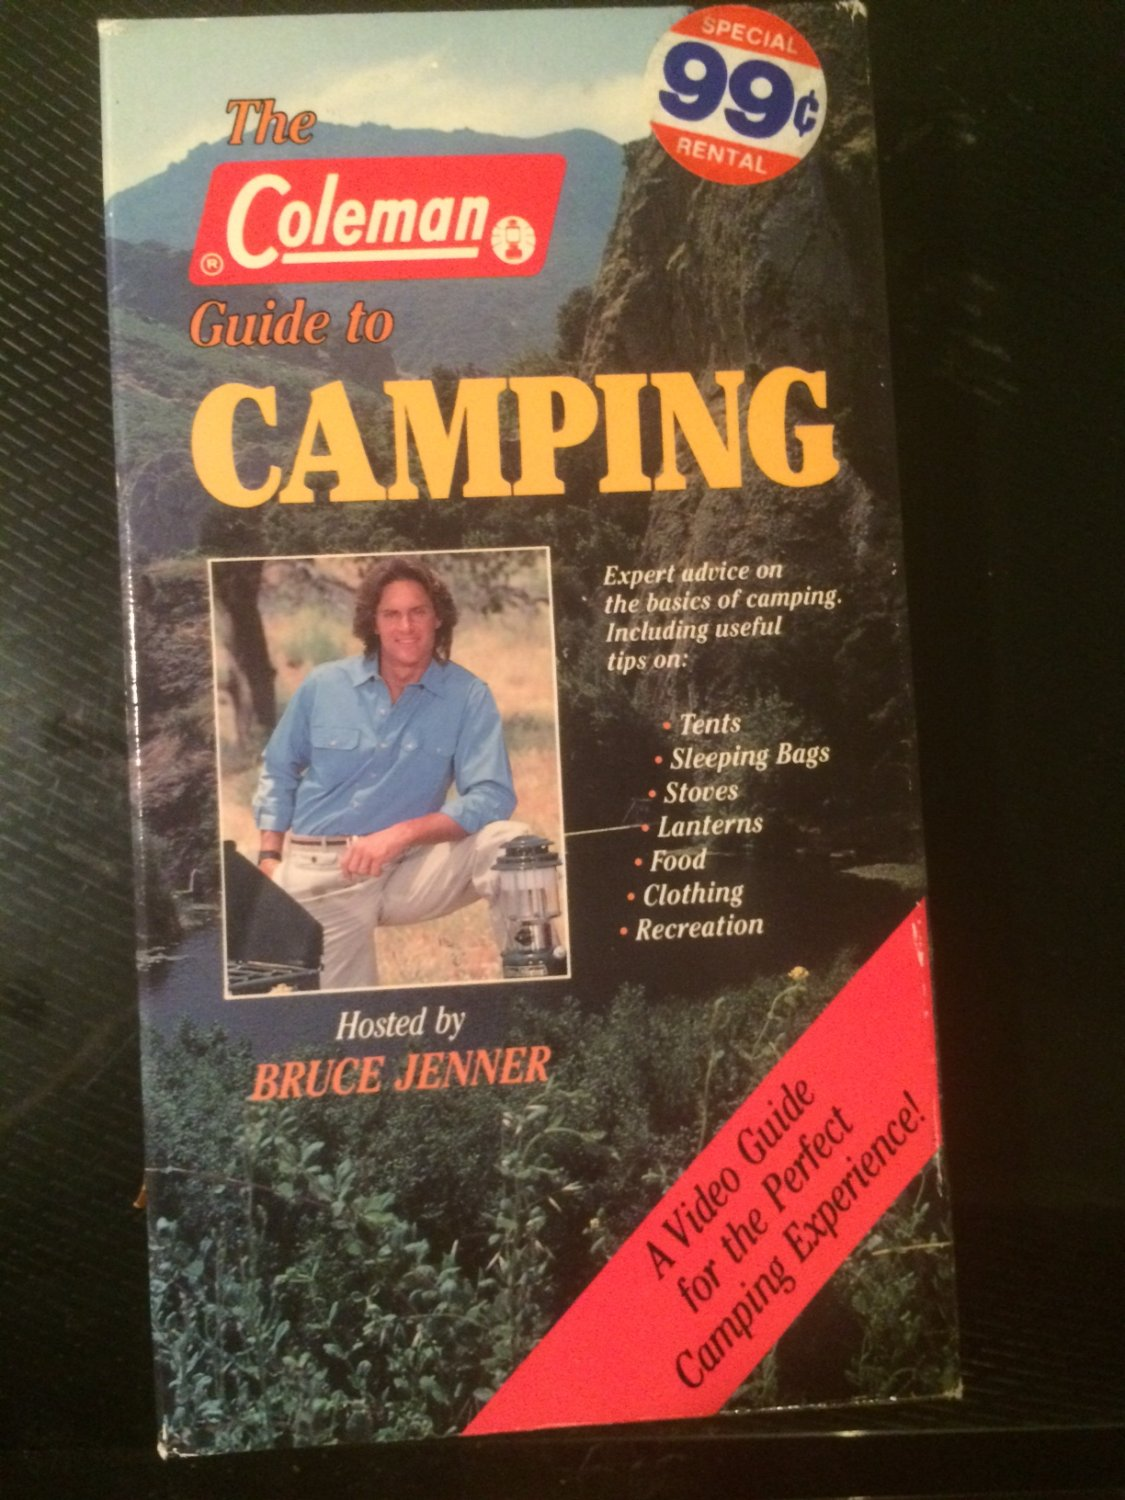 The Coleman Guide to Camping (Bruce Jenner) - Used - VHS - NOT ON DVD